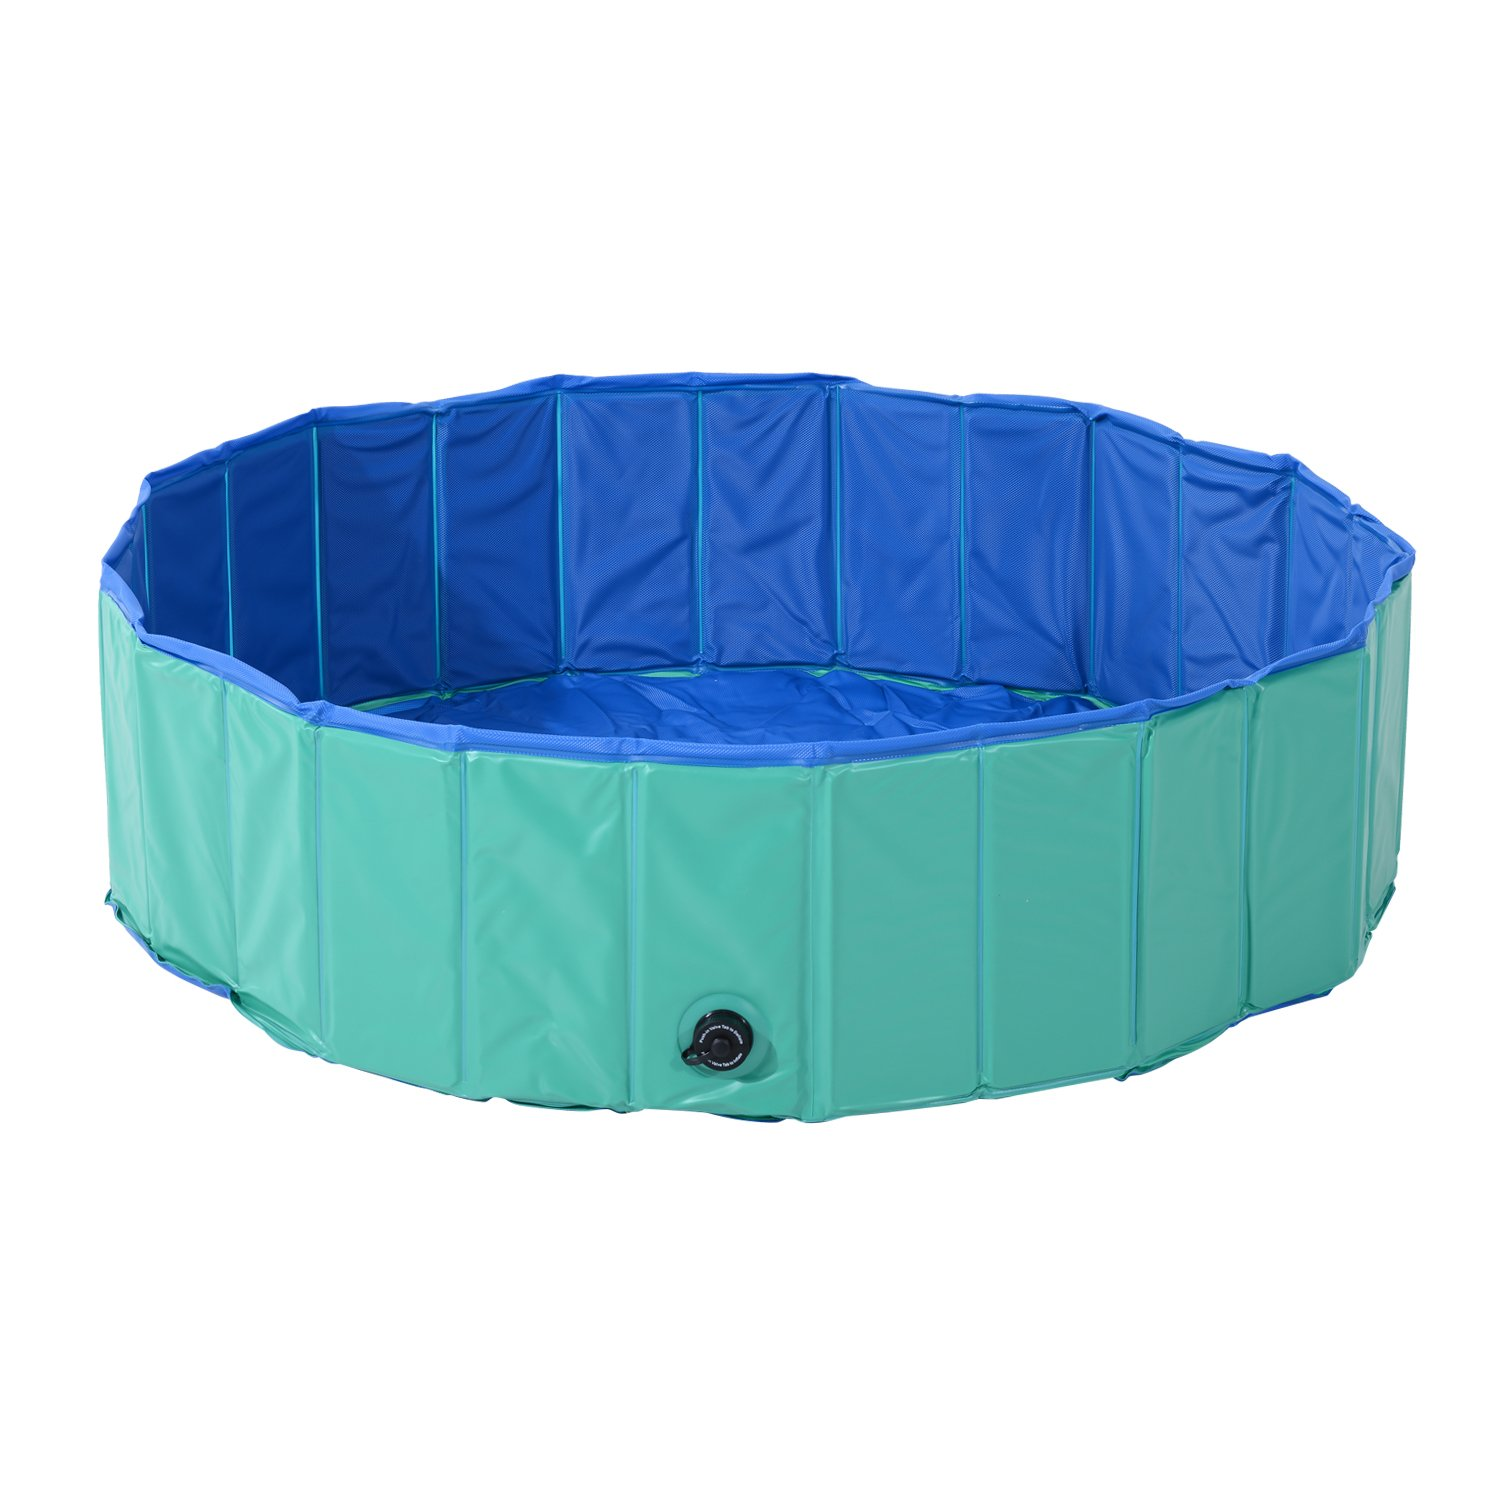 Bathtubs Freestanding Couples Collapsible Inflatable Blue Thickening Green  Swimming Pool (Size : 16012455 cm) - B07H7KB6WQ